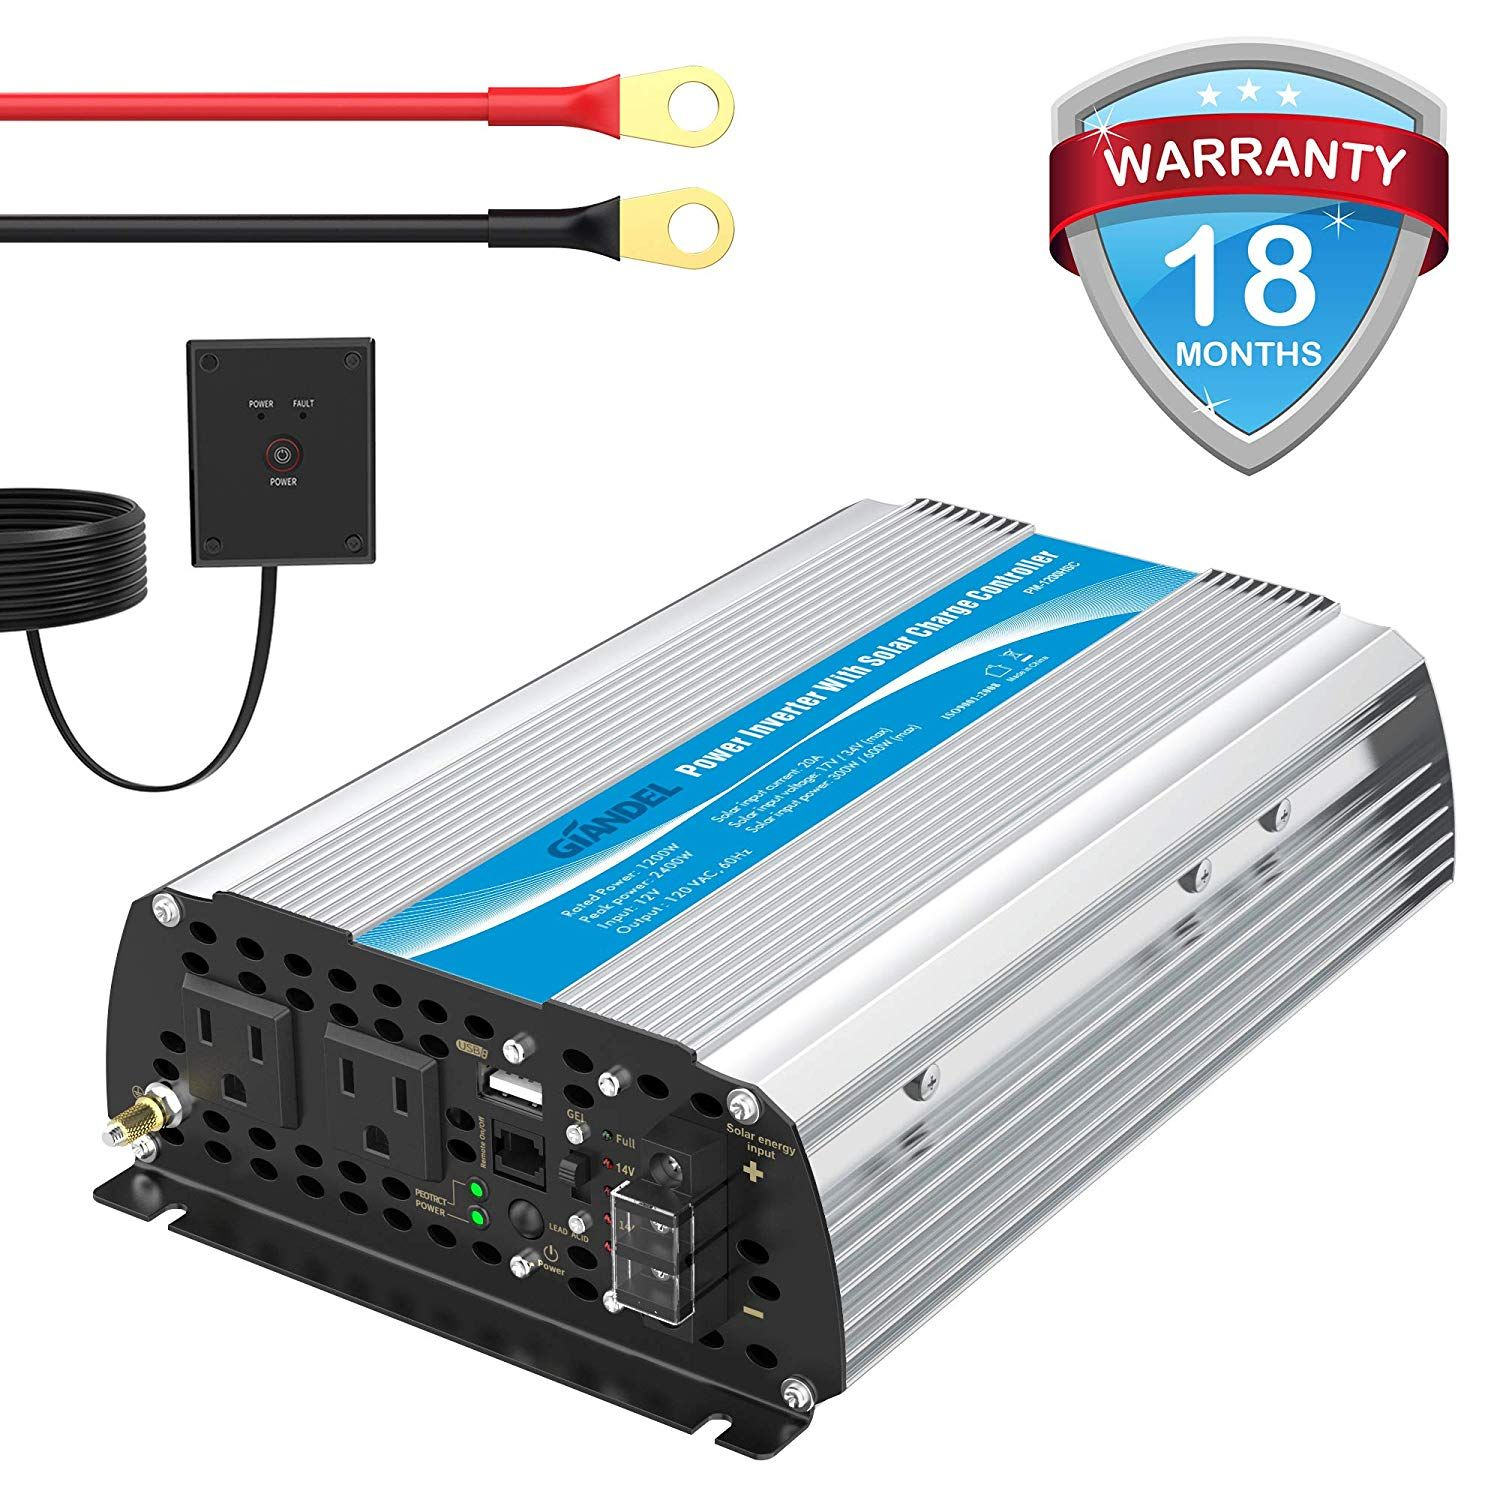 1200w Power Inverter Dc12 Volt To Ac 120 Volt With 20a Solar Charge Controller And Remote Control And Usb Por Solar Power Inverter Power Inverters Solar System